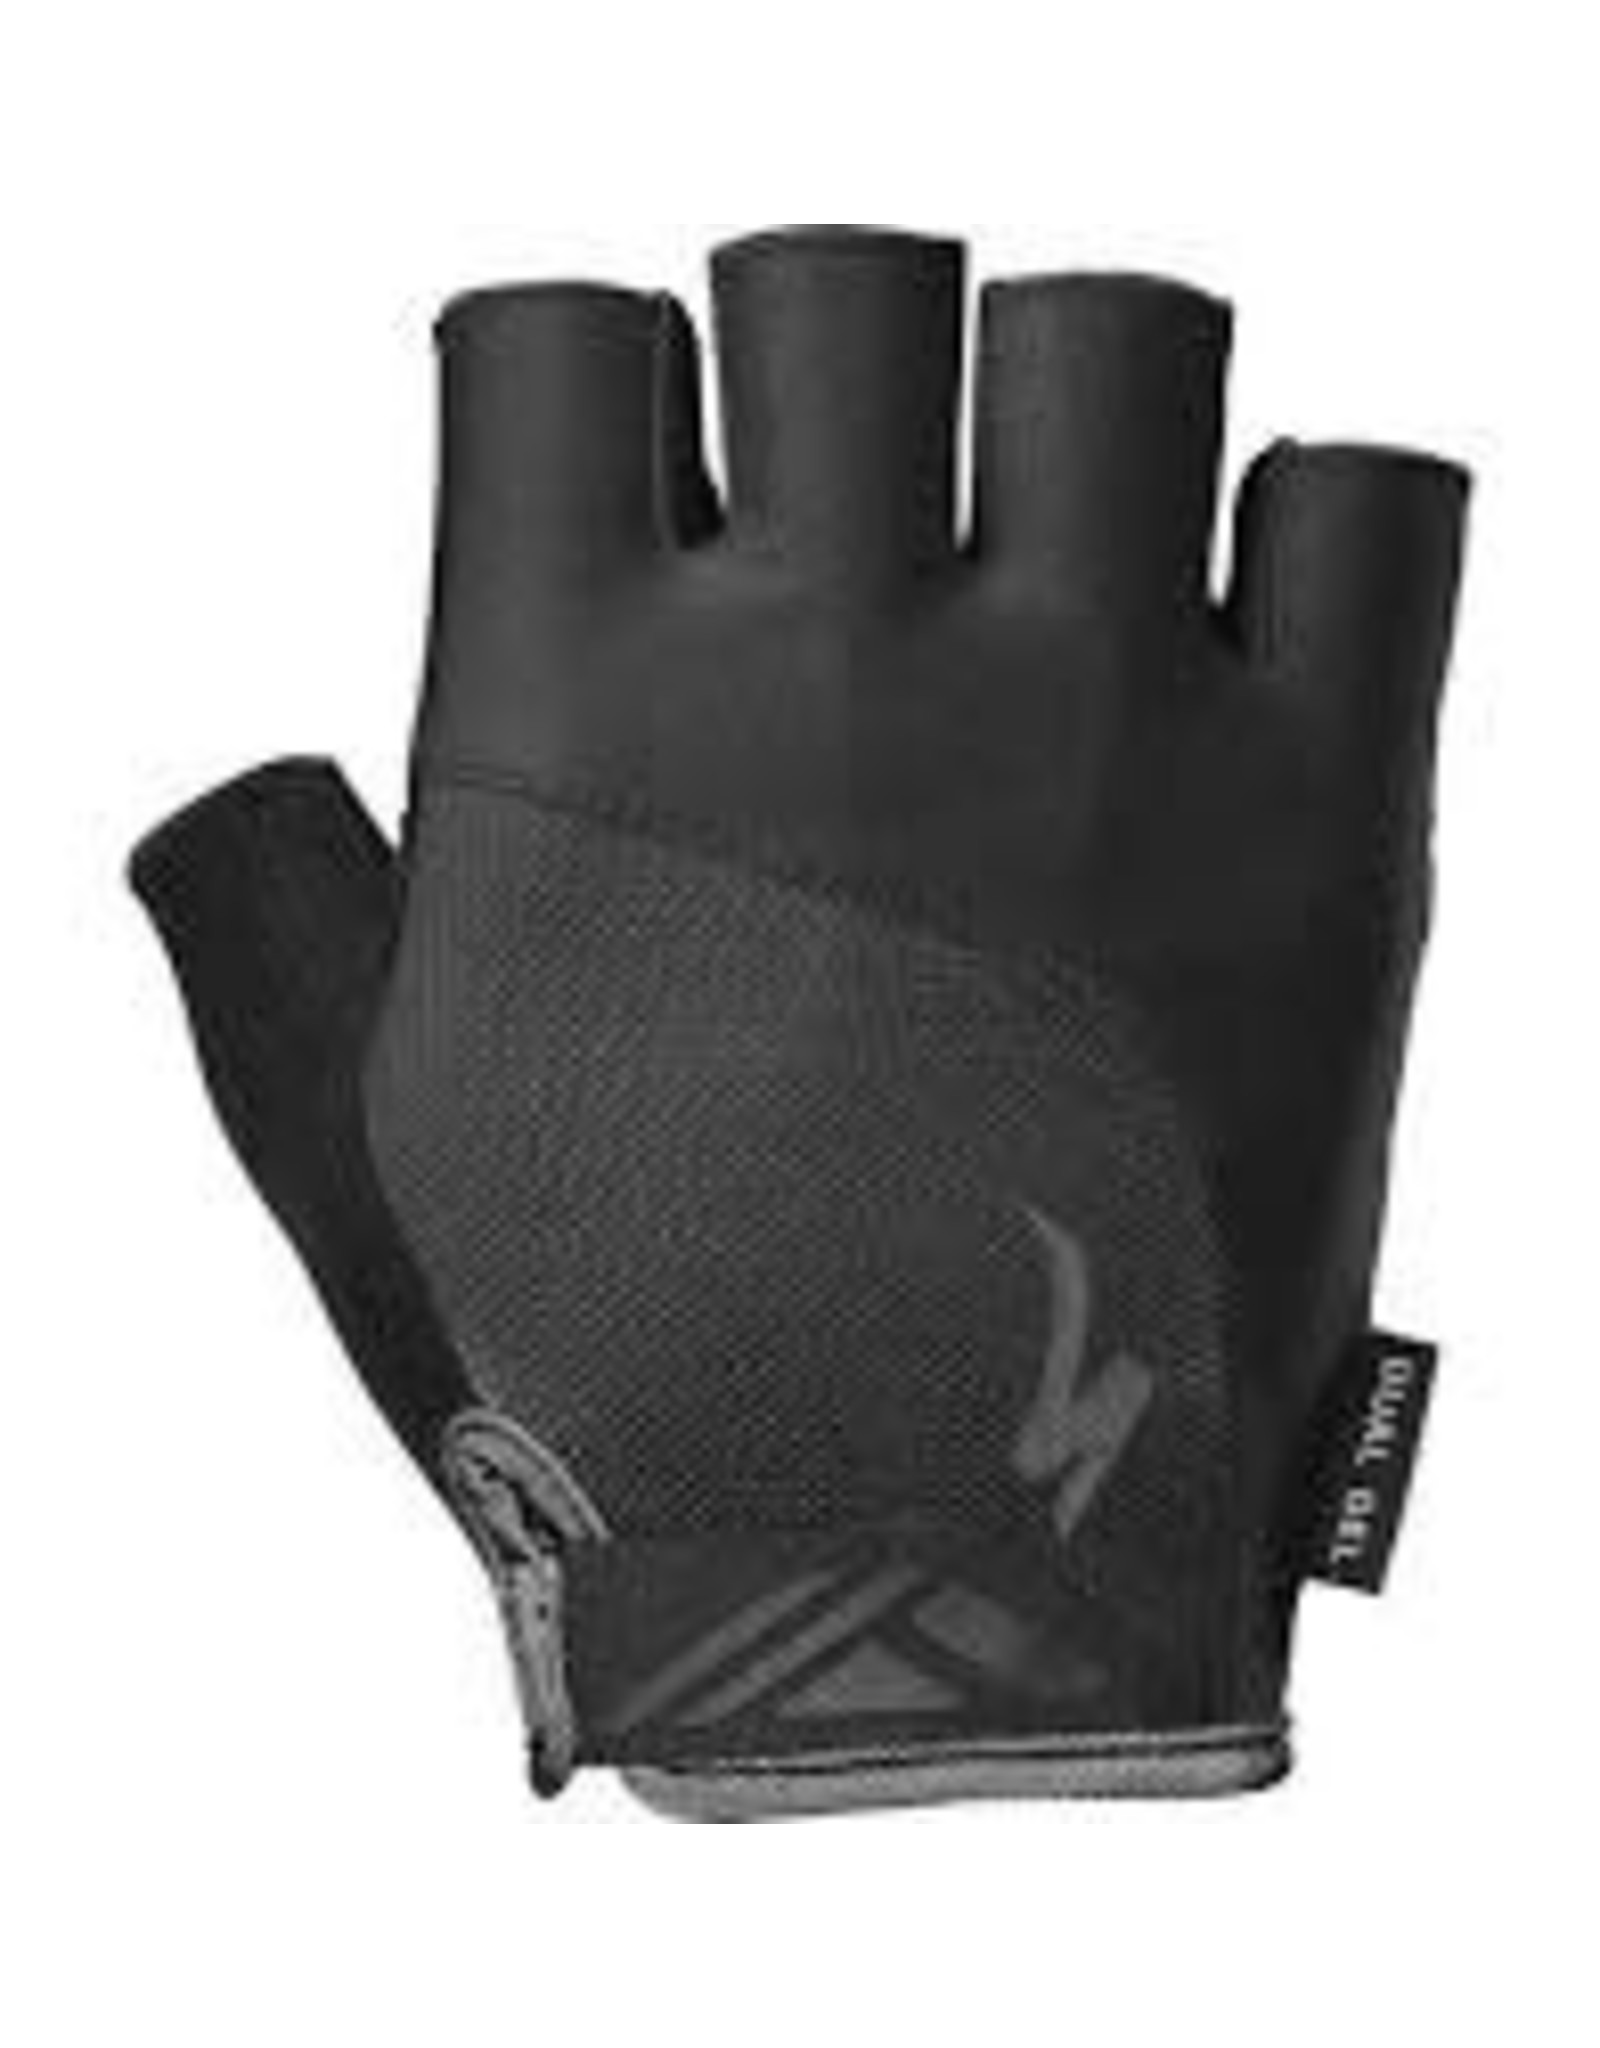 Specialized Glove Spec Dual Gel SF Blk Med